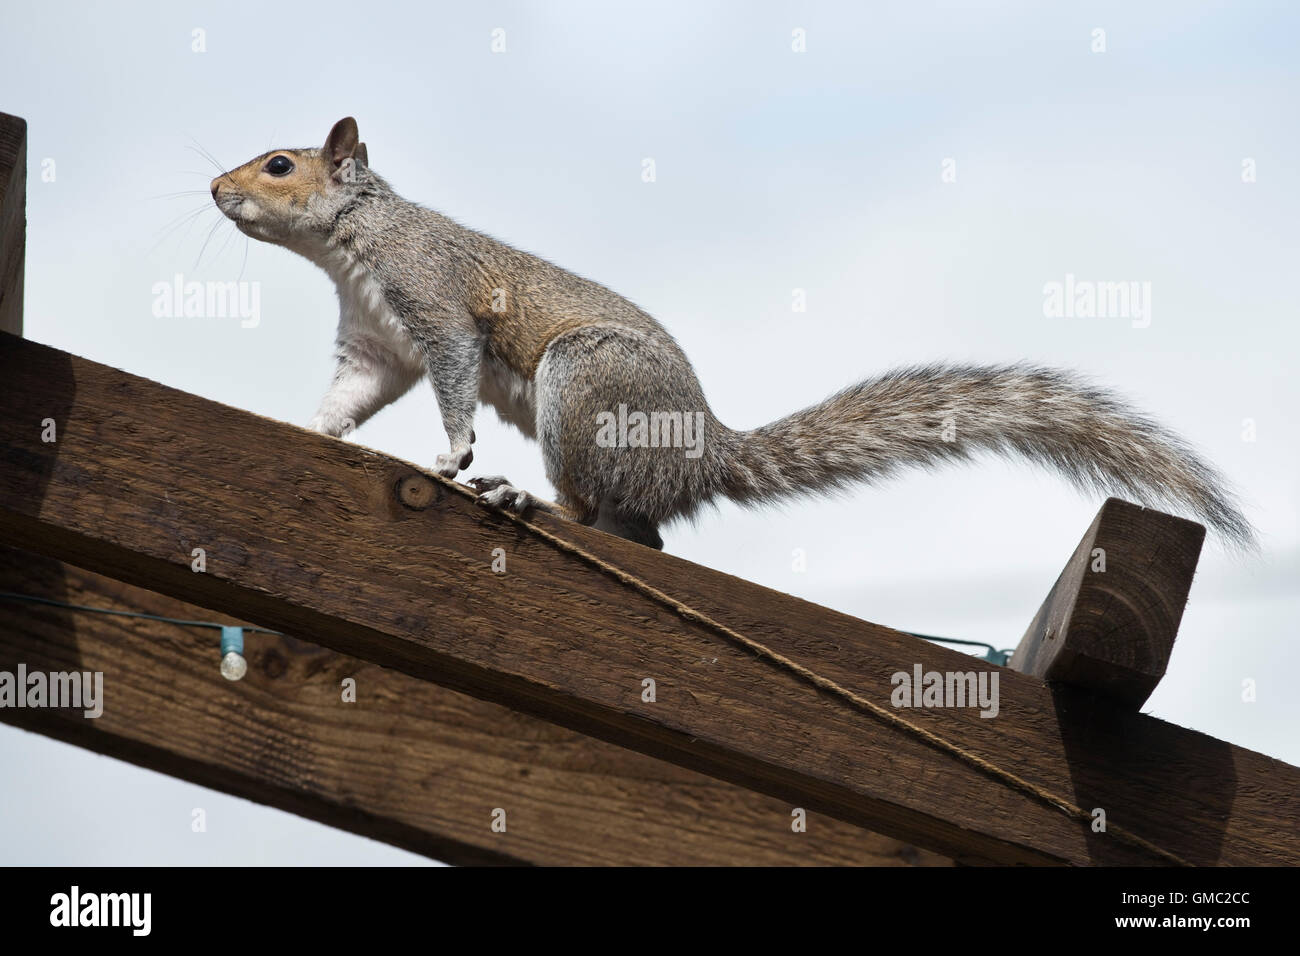 An adult grey squiirel in a jumping position escaping after raiding a bird feeder, Berkshire, July - Stock Image